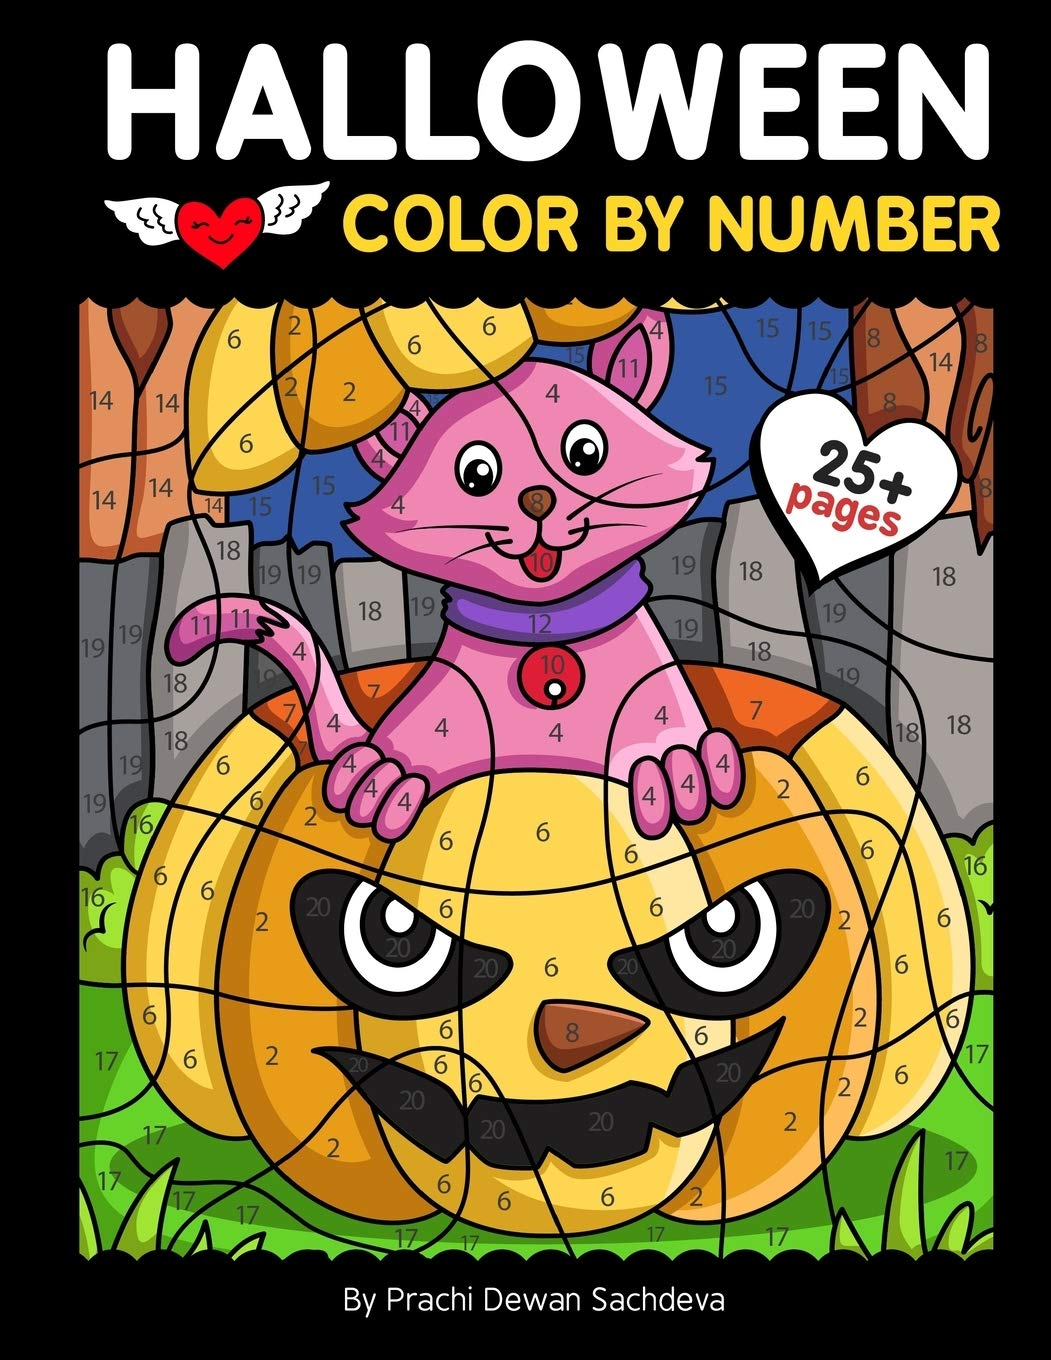 Halloween Color By Number 25 Easy Paint By Number Coloring Pages With Pumpkins Witches Spooky Monsters Haunted House And Lots Of Spooky Decorative Elements Sachdeva Prachi Dewan Sachdeva Sachin 9798675291960 Amazon Com Books